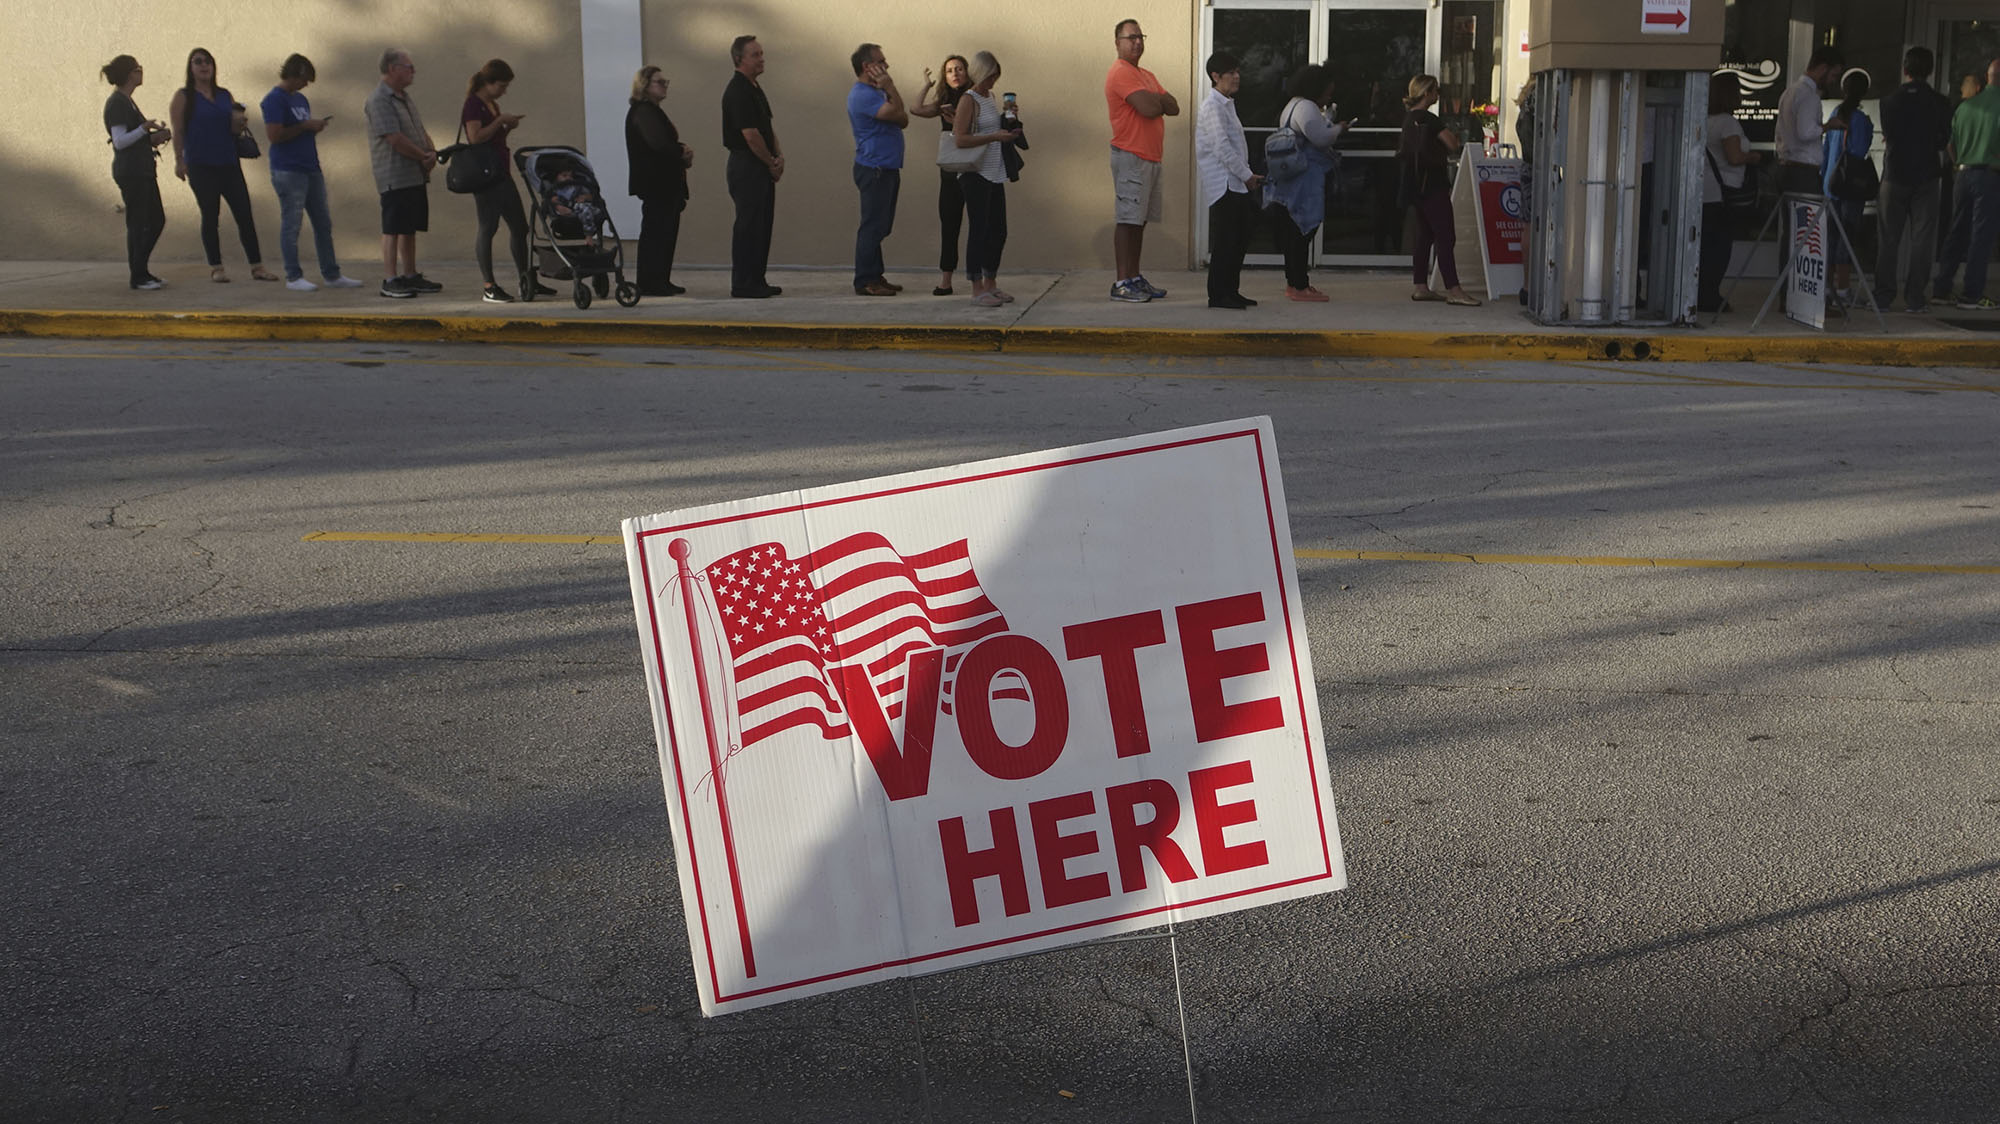 Florida to vote on restoring felon voting rights